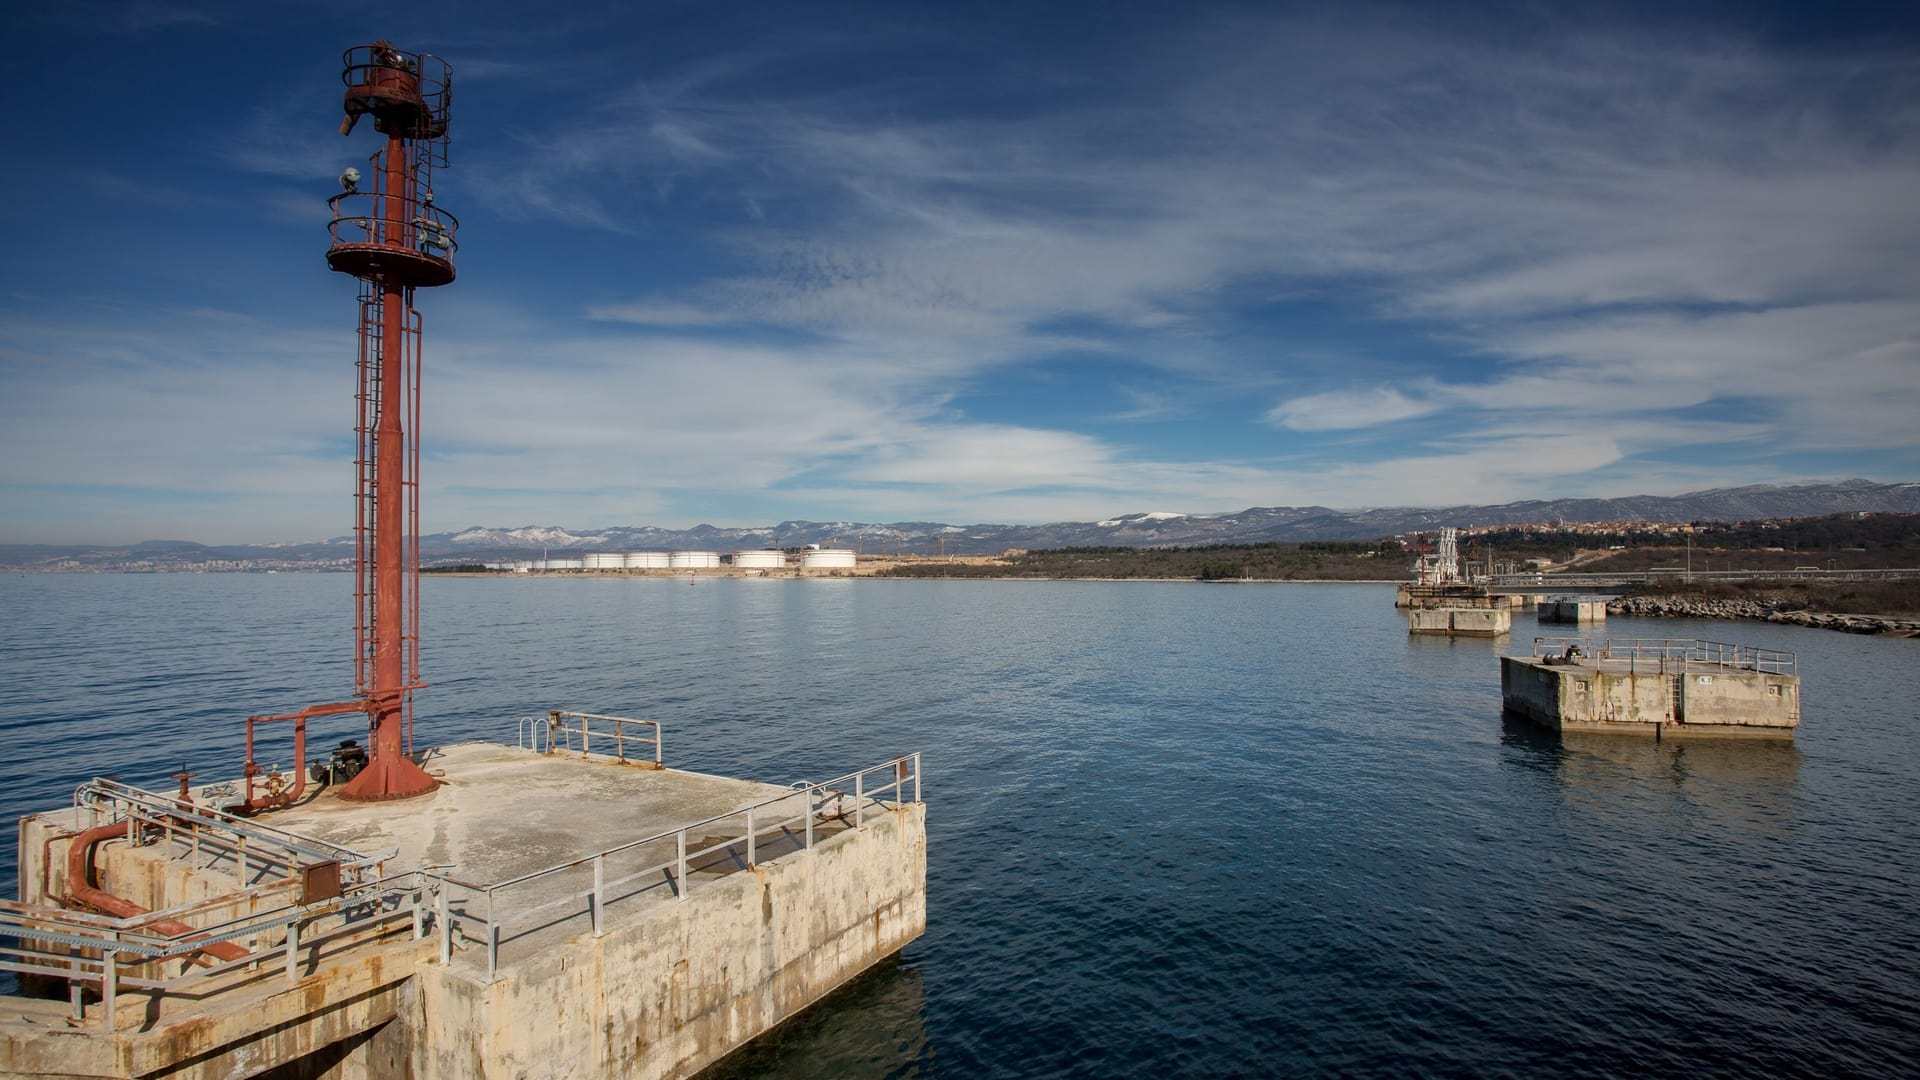 Croatia: Krk floating LNG terminal and the role of Hungary cause heated debate